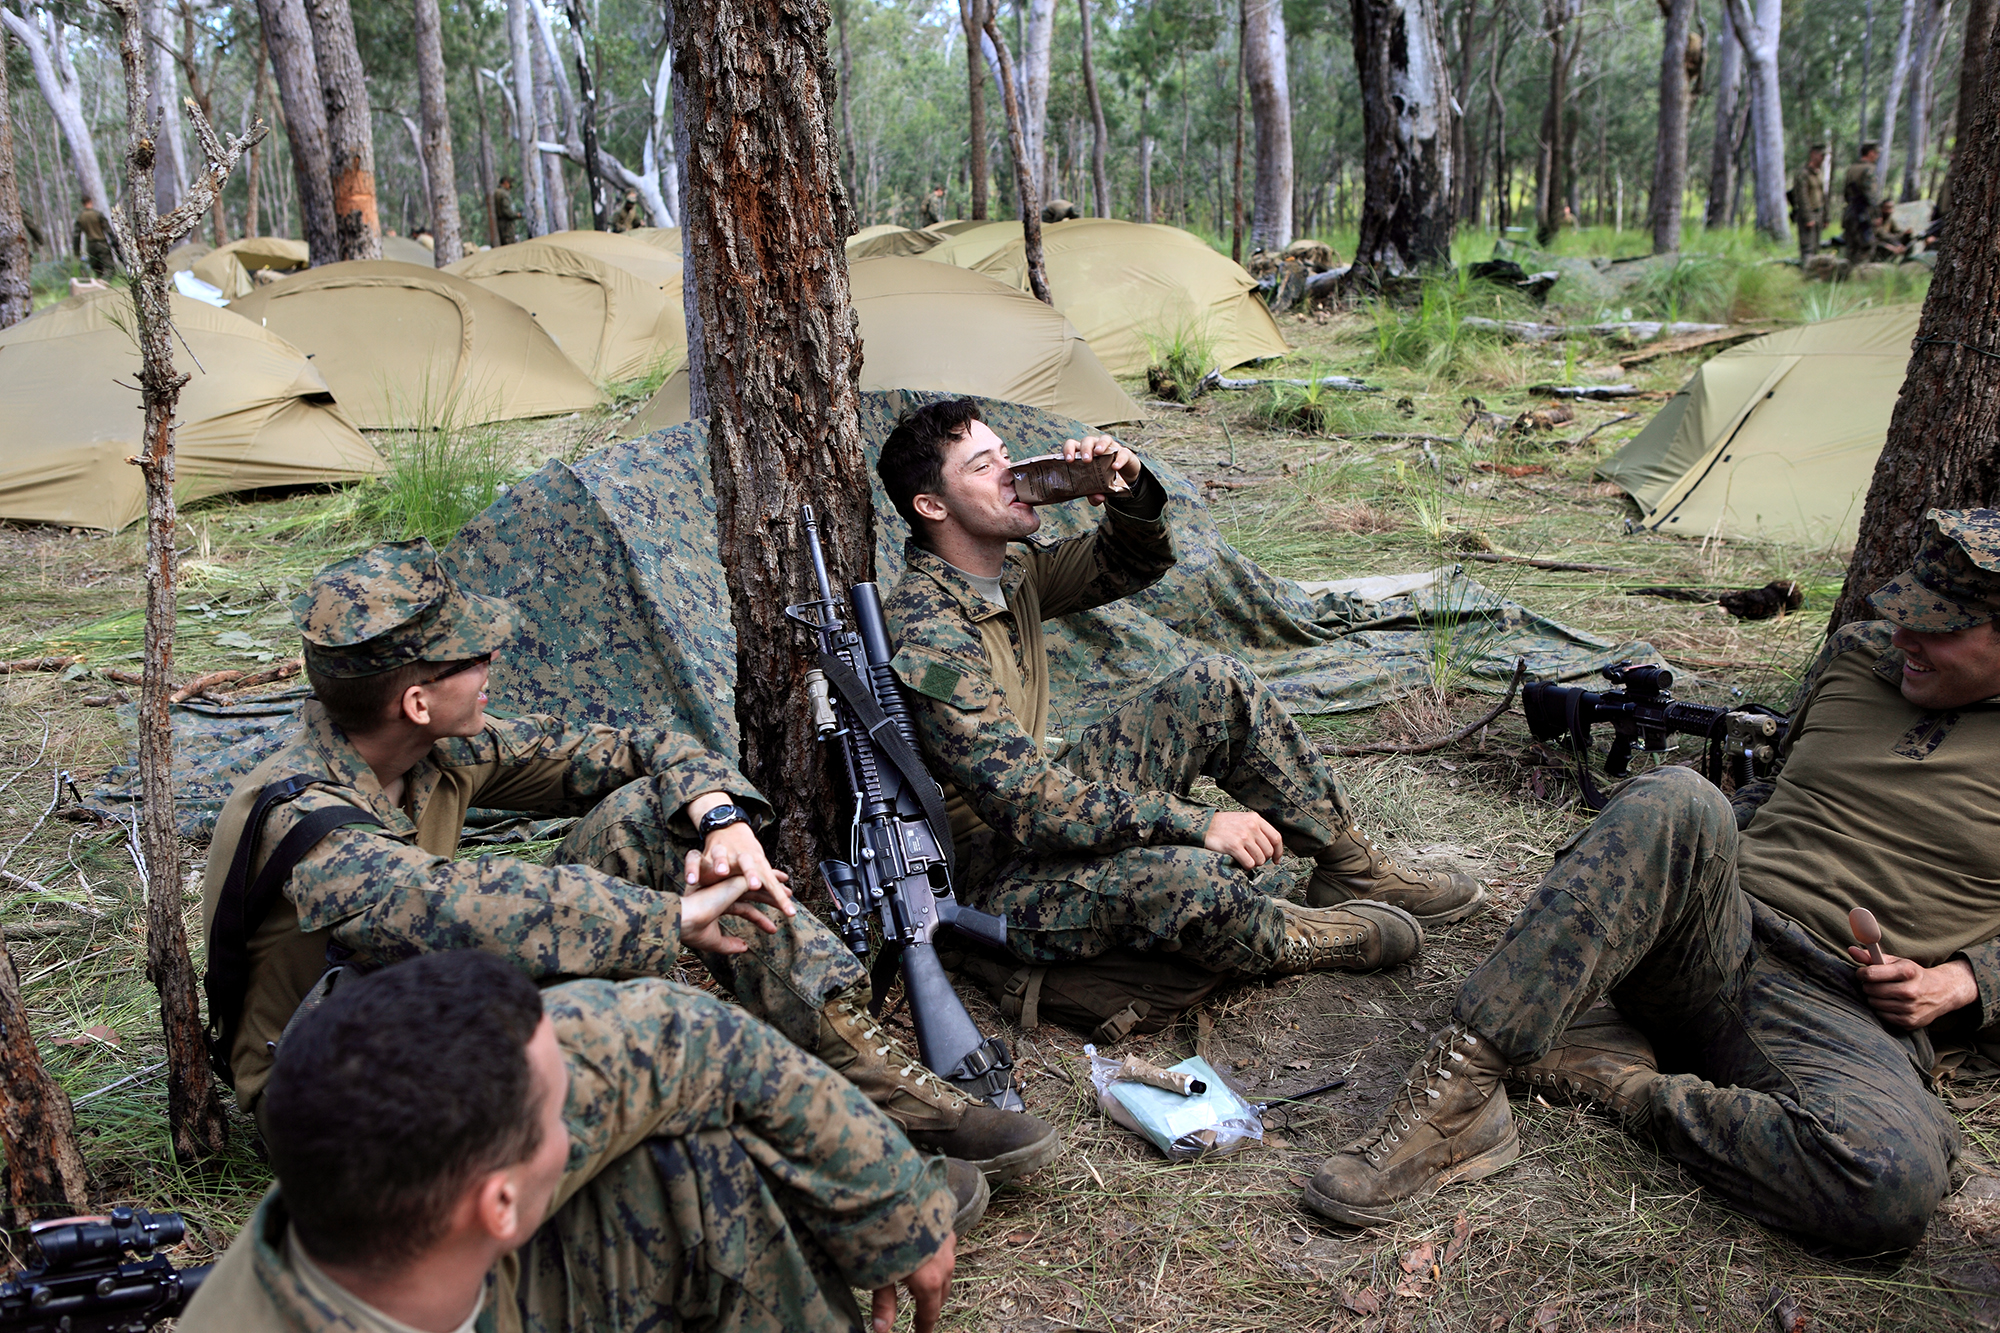 US Marine Corps taking a break from military exercises at Shoalwater Bay.